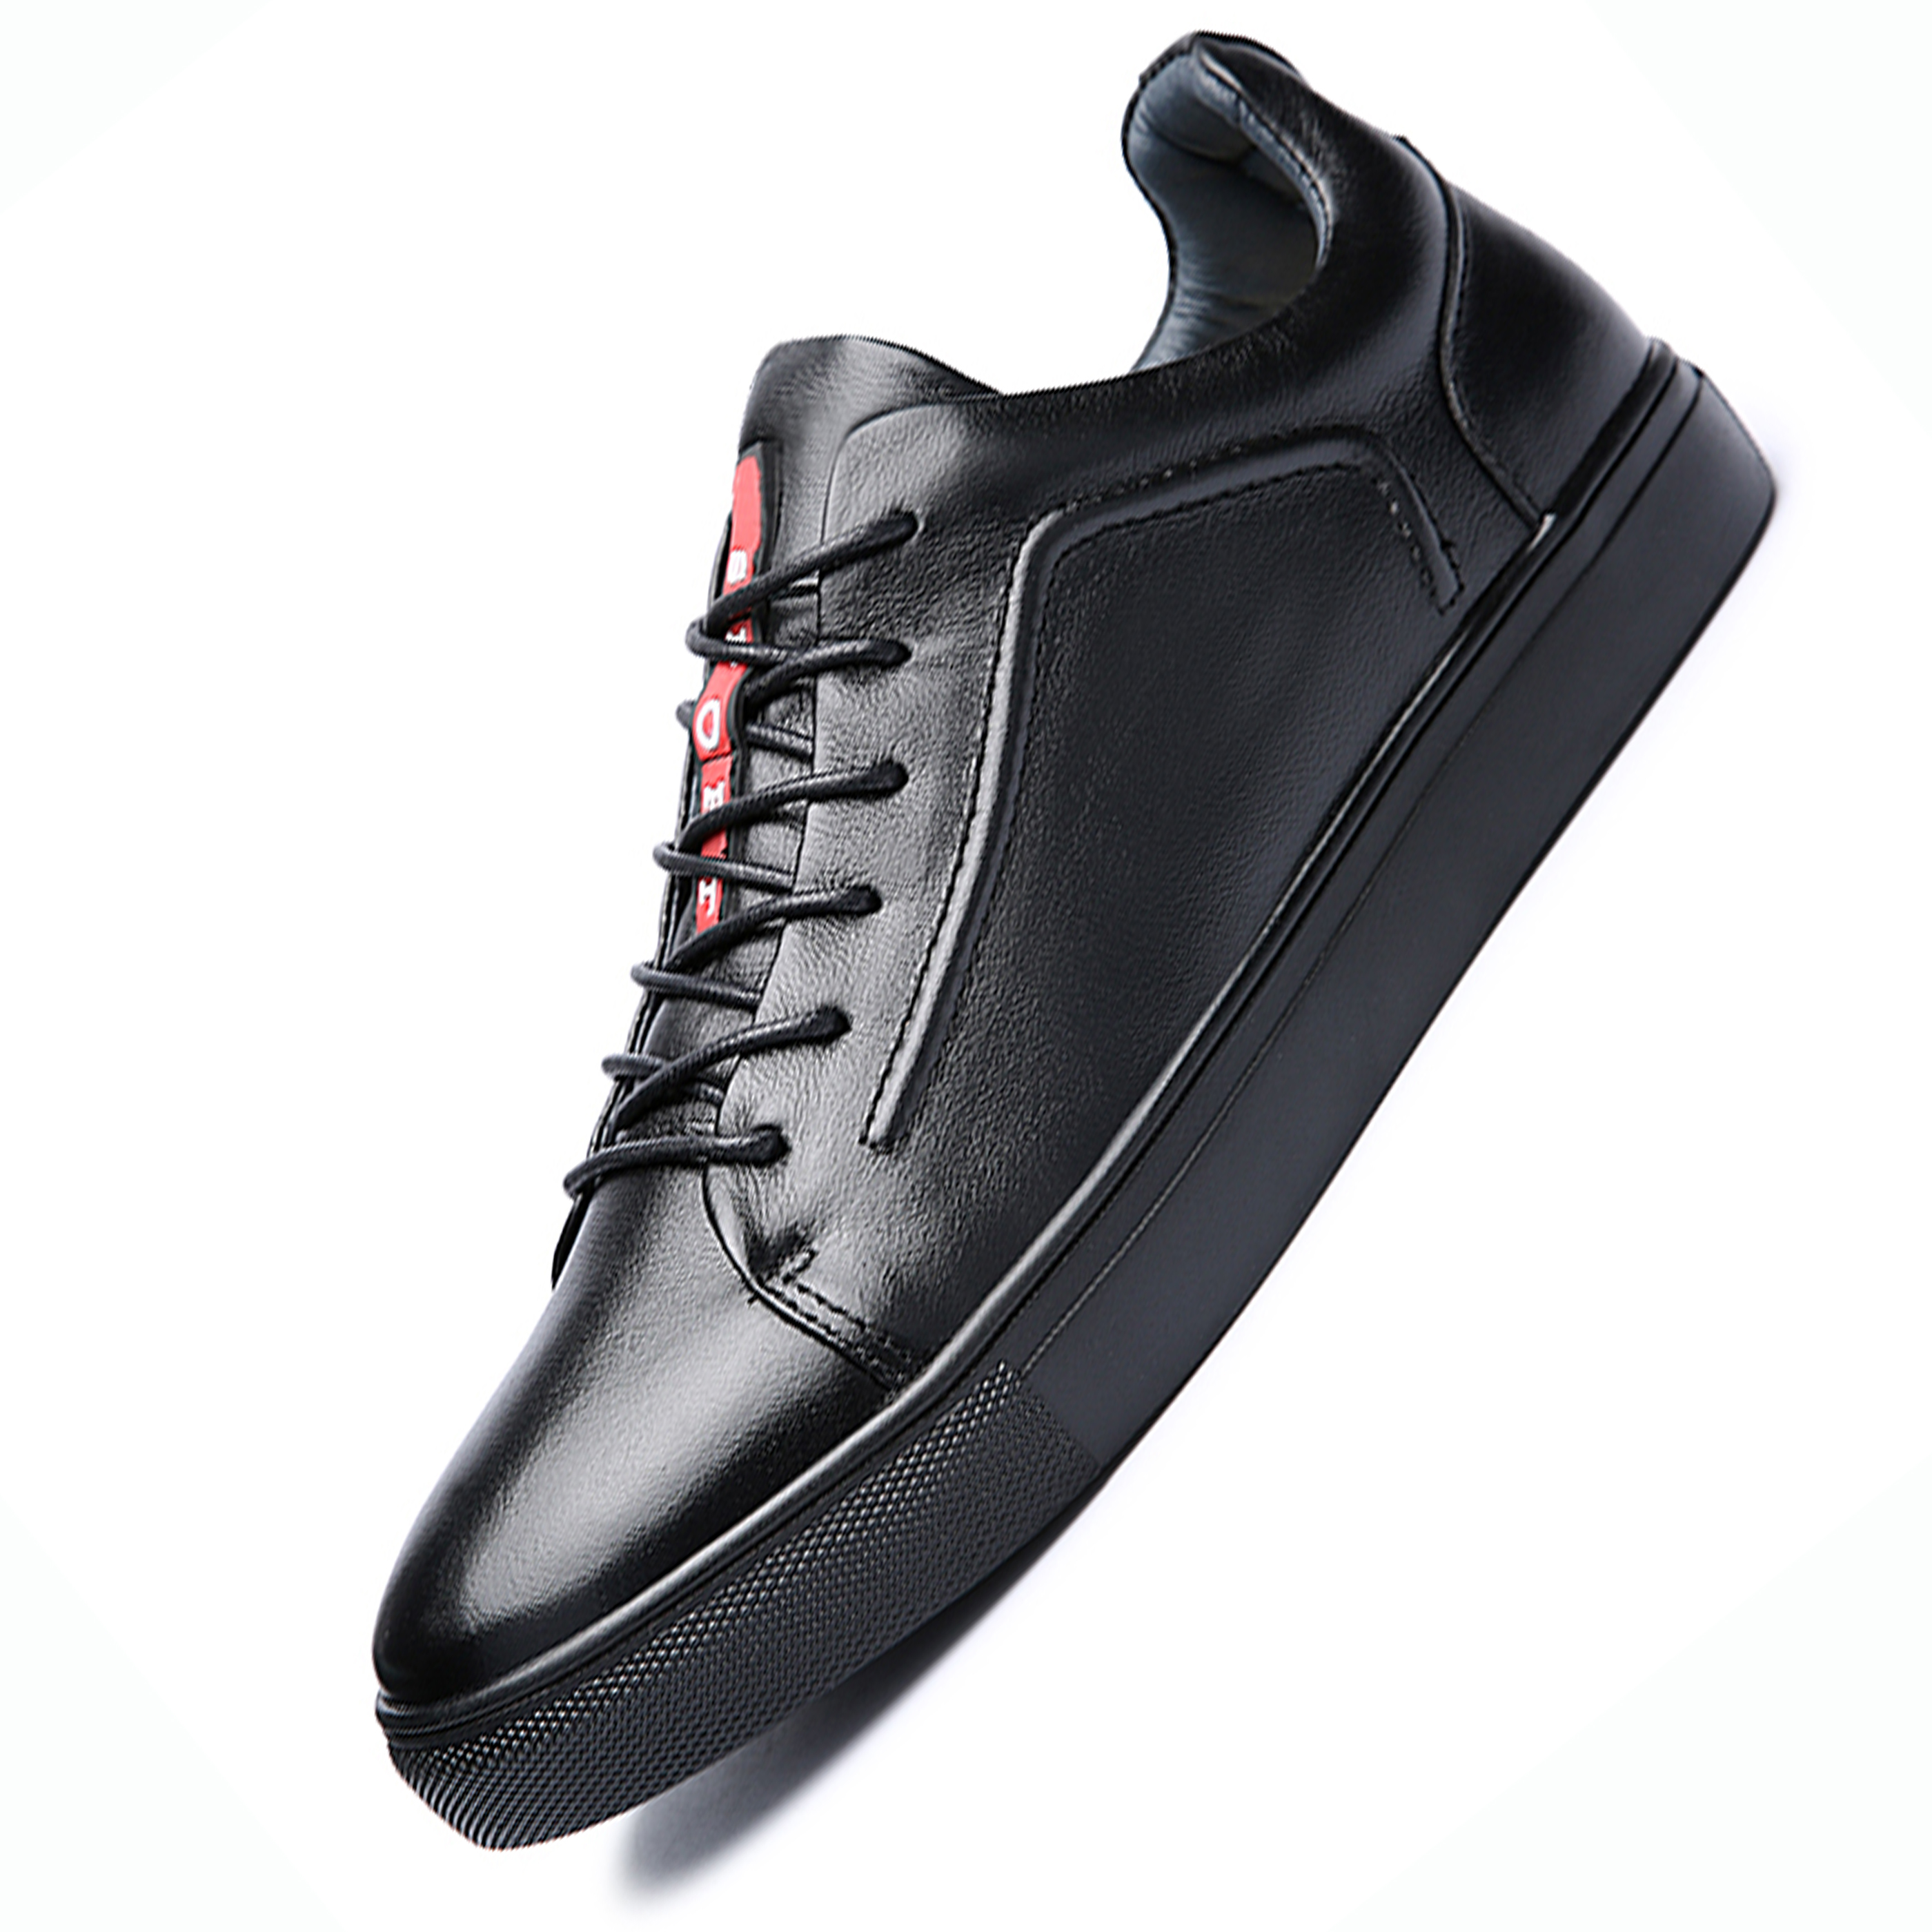 Big Size Flats Shoes High Quality Genuine Leather Black Spring Winter Men Casual Shoes Male Shoes Real Leather Men Oxford  Flats top brand high quality genuine leather casual men shoes cow suede comfortable loafers soft breathable shoes men flats warm